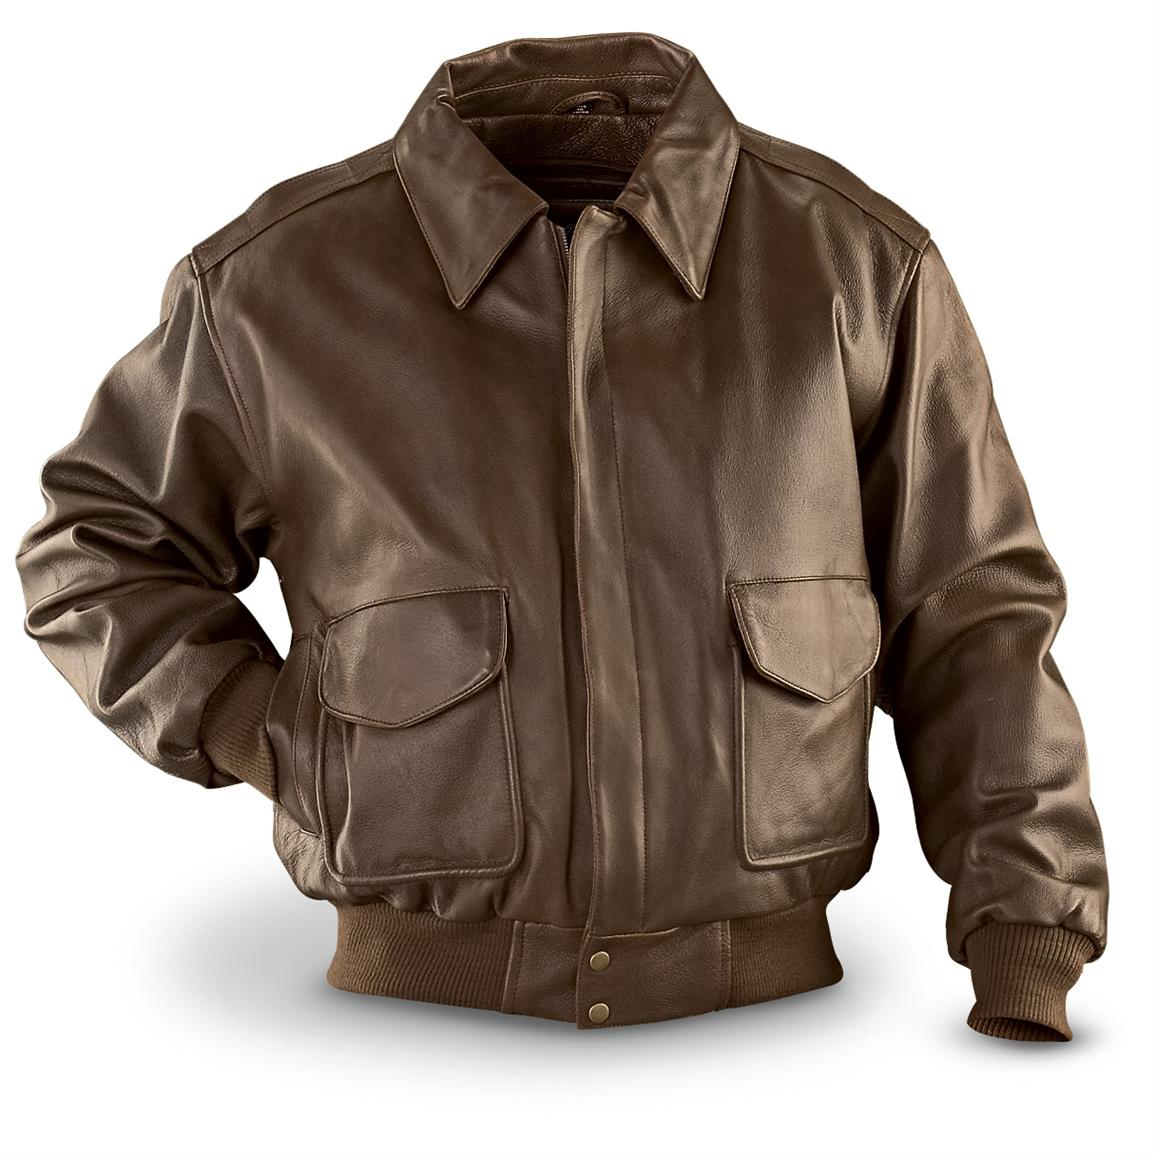 Vintage Leather™ Bomber Jacket with Zip - out Liner, Brown ...